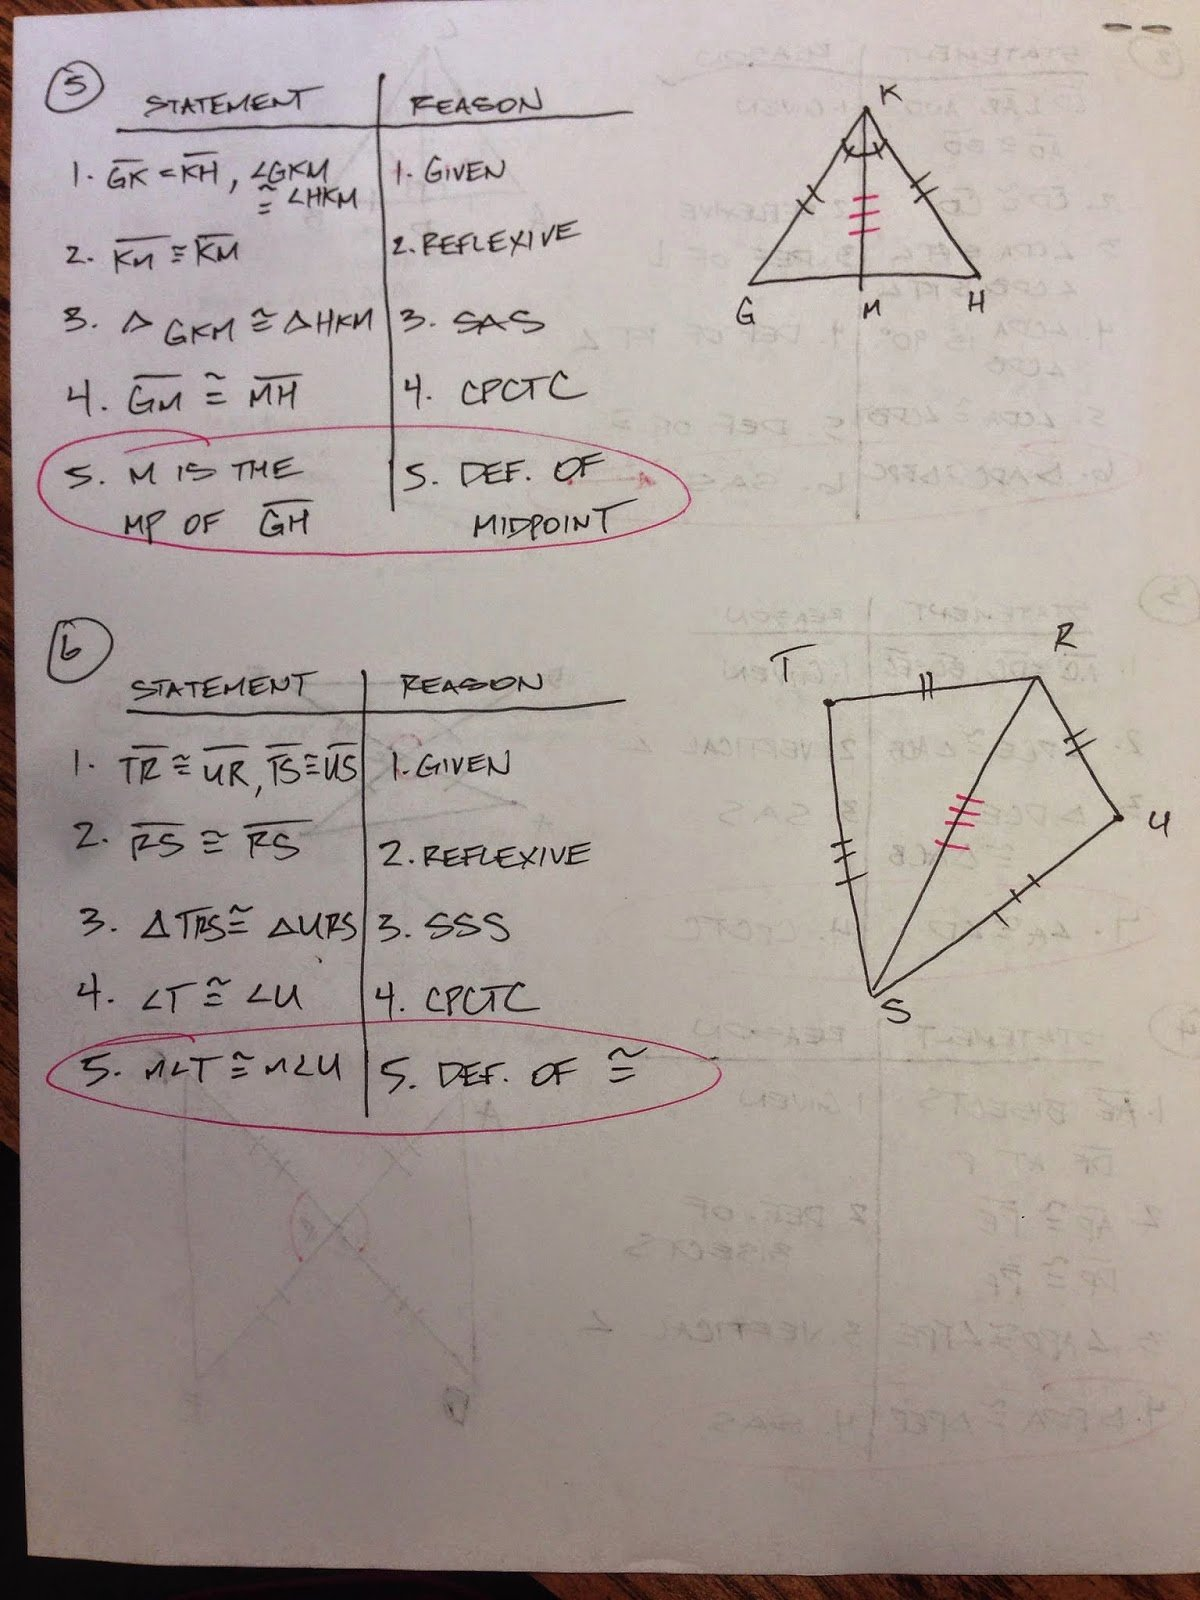 Triangle Congruence Worksheet Answer Key Luxury Using Congruent Triangles Cpctc Worksheet 4 4